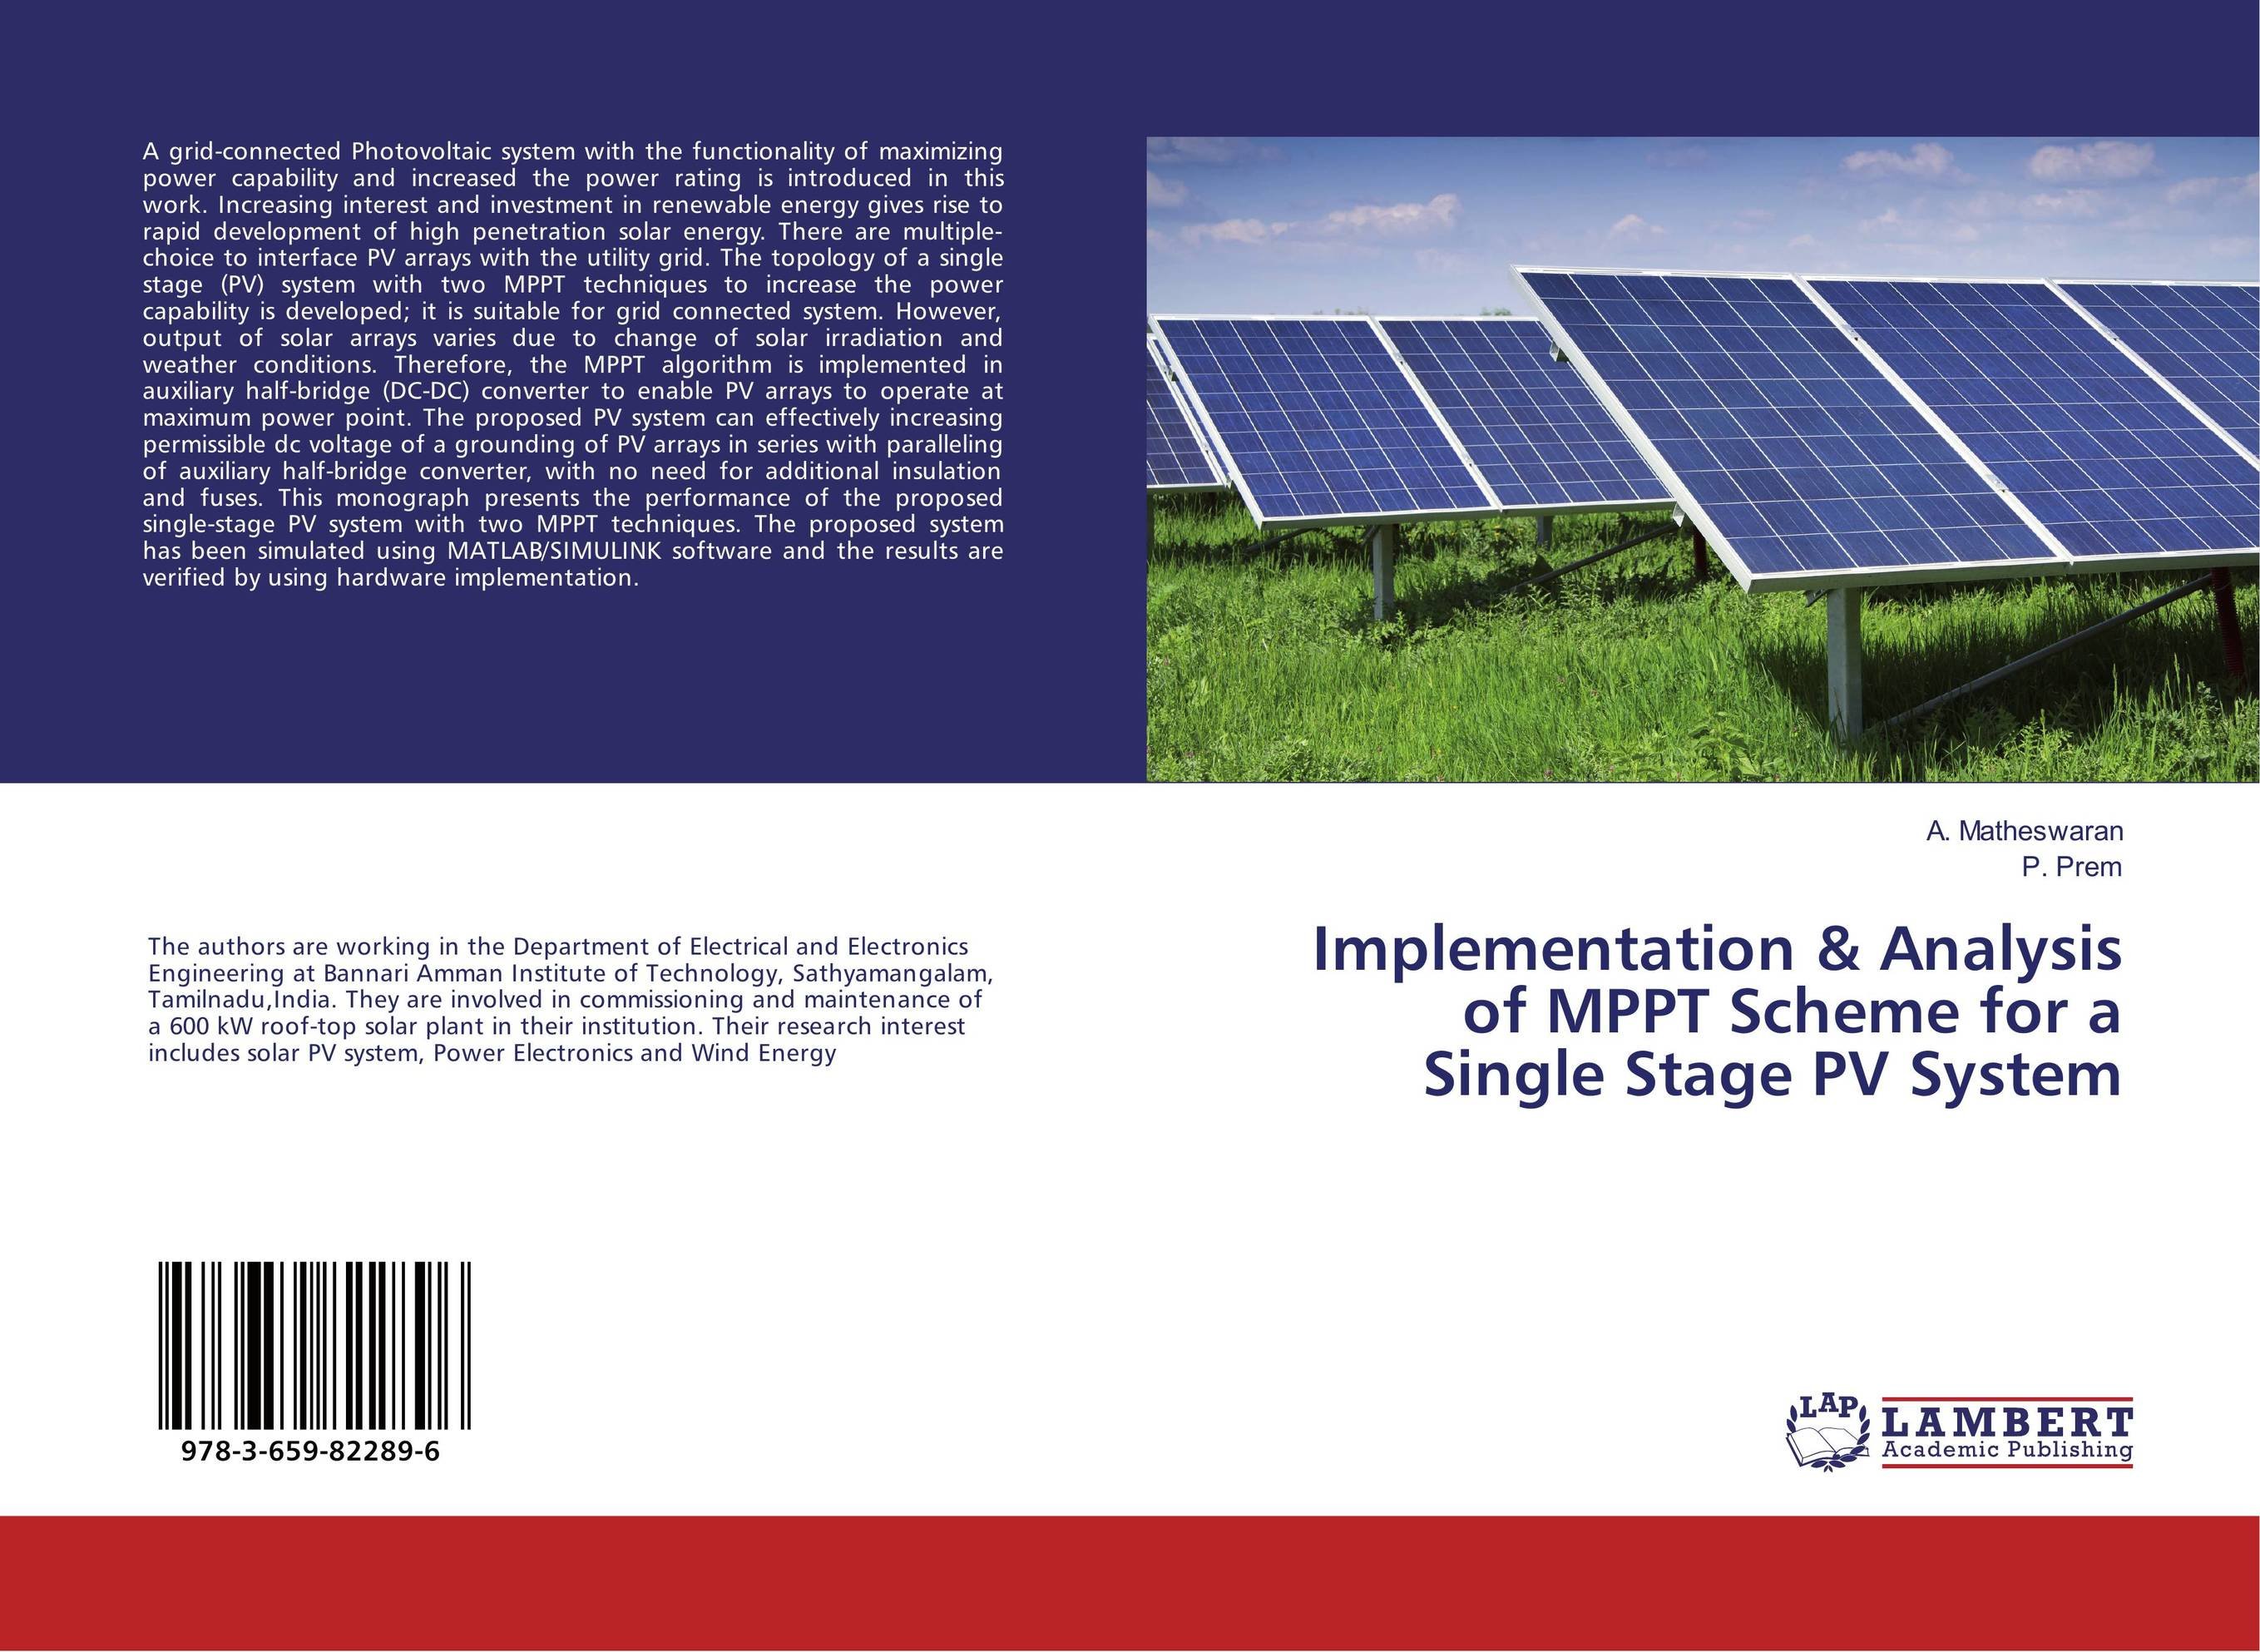 Implementation & Analysis of MPPT Scheme for a Single Stage PV System digital display 5000w peak 10000w pure sine wave power inverter 24v dc to 220v 230v 240v off grid power converter solar system